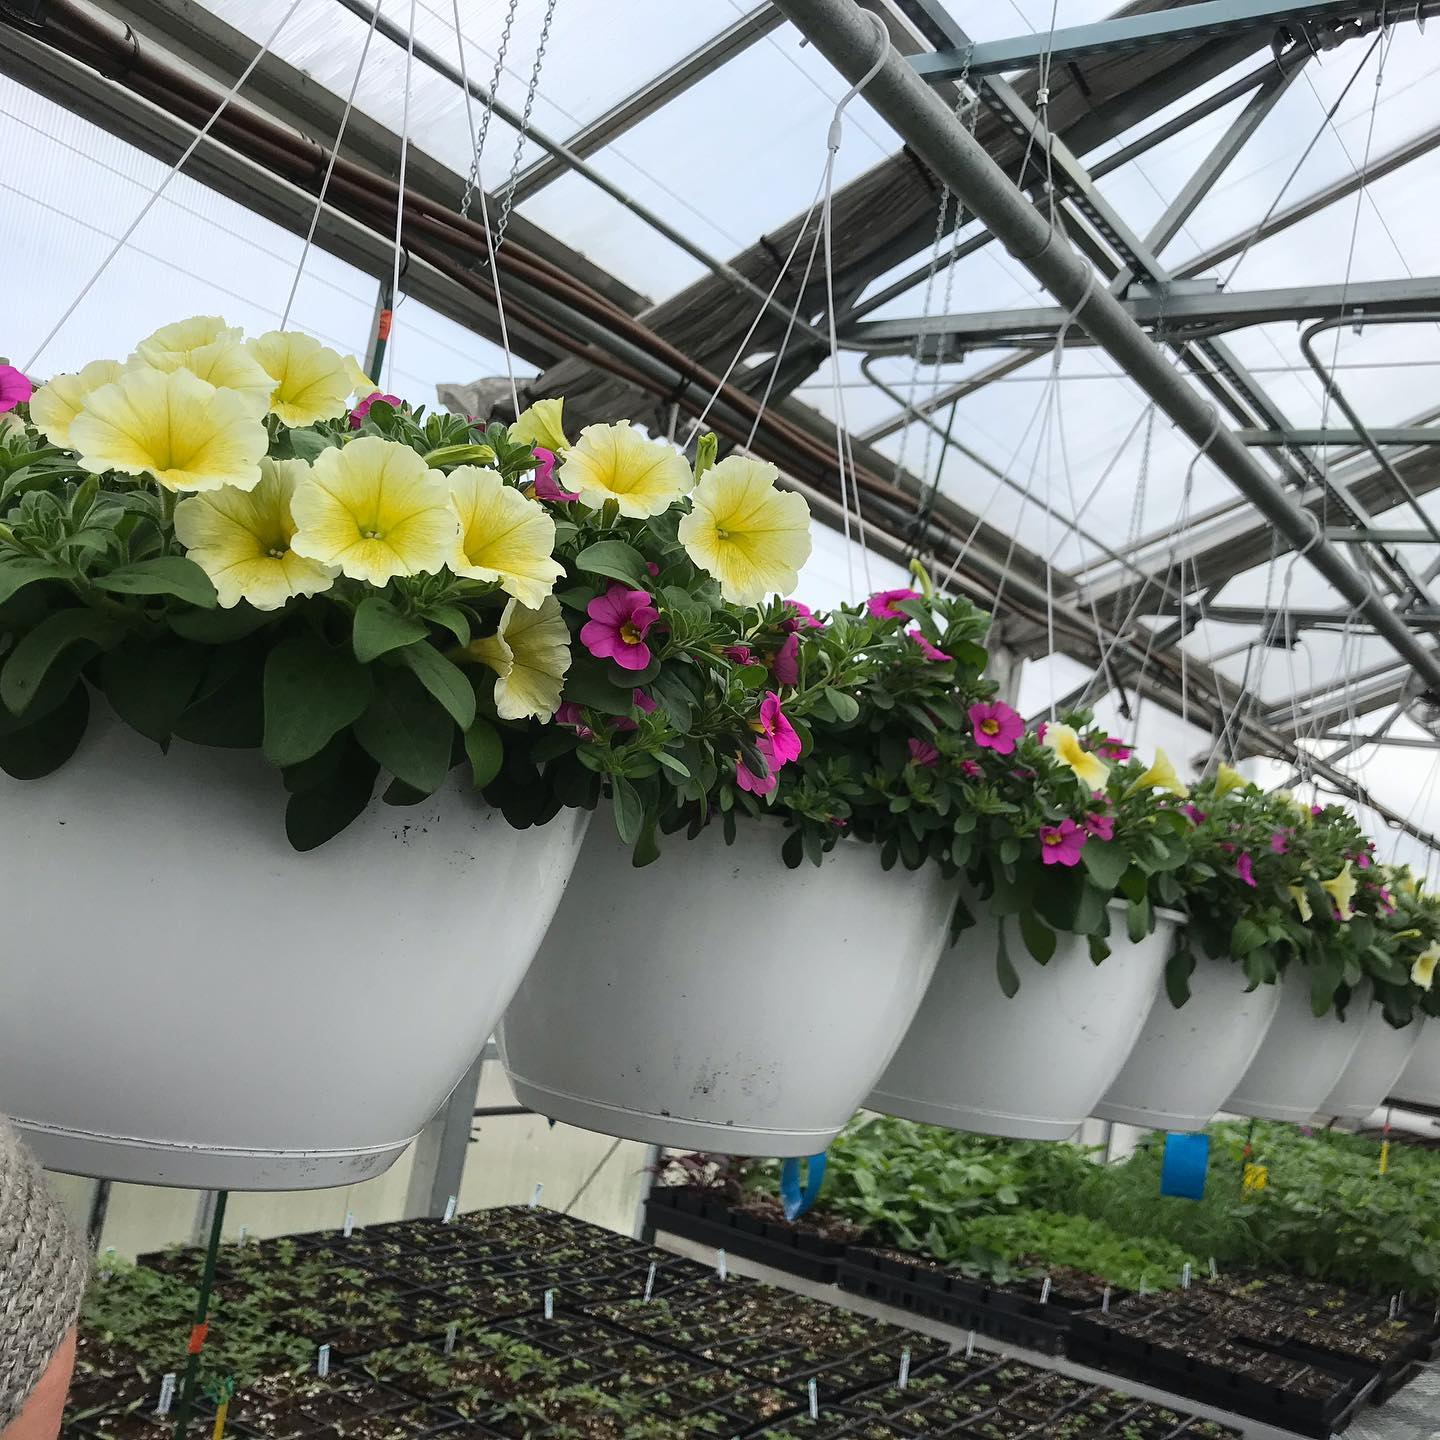 Hanging Baskets and Plants Raise Money